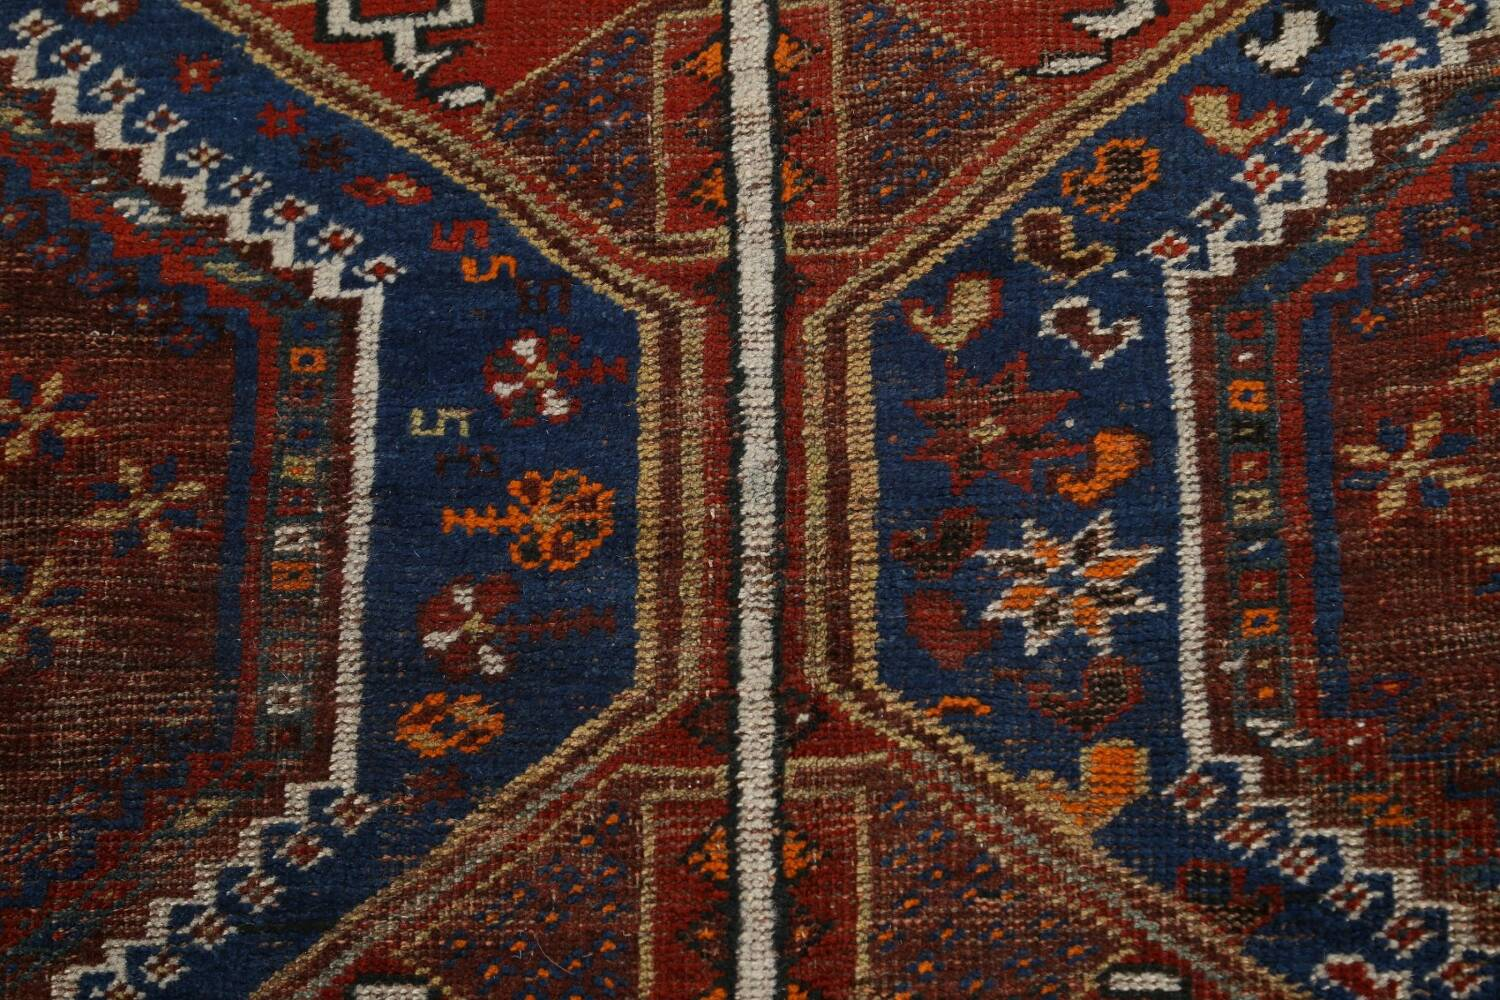 Pre-1900 Antique Ghashghaie Persian Area Rug 5x6 image 11